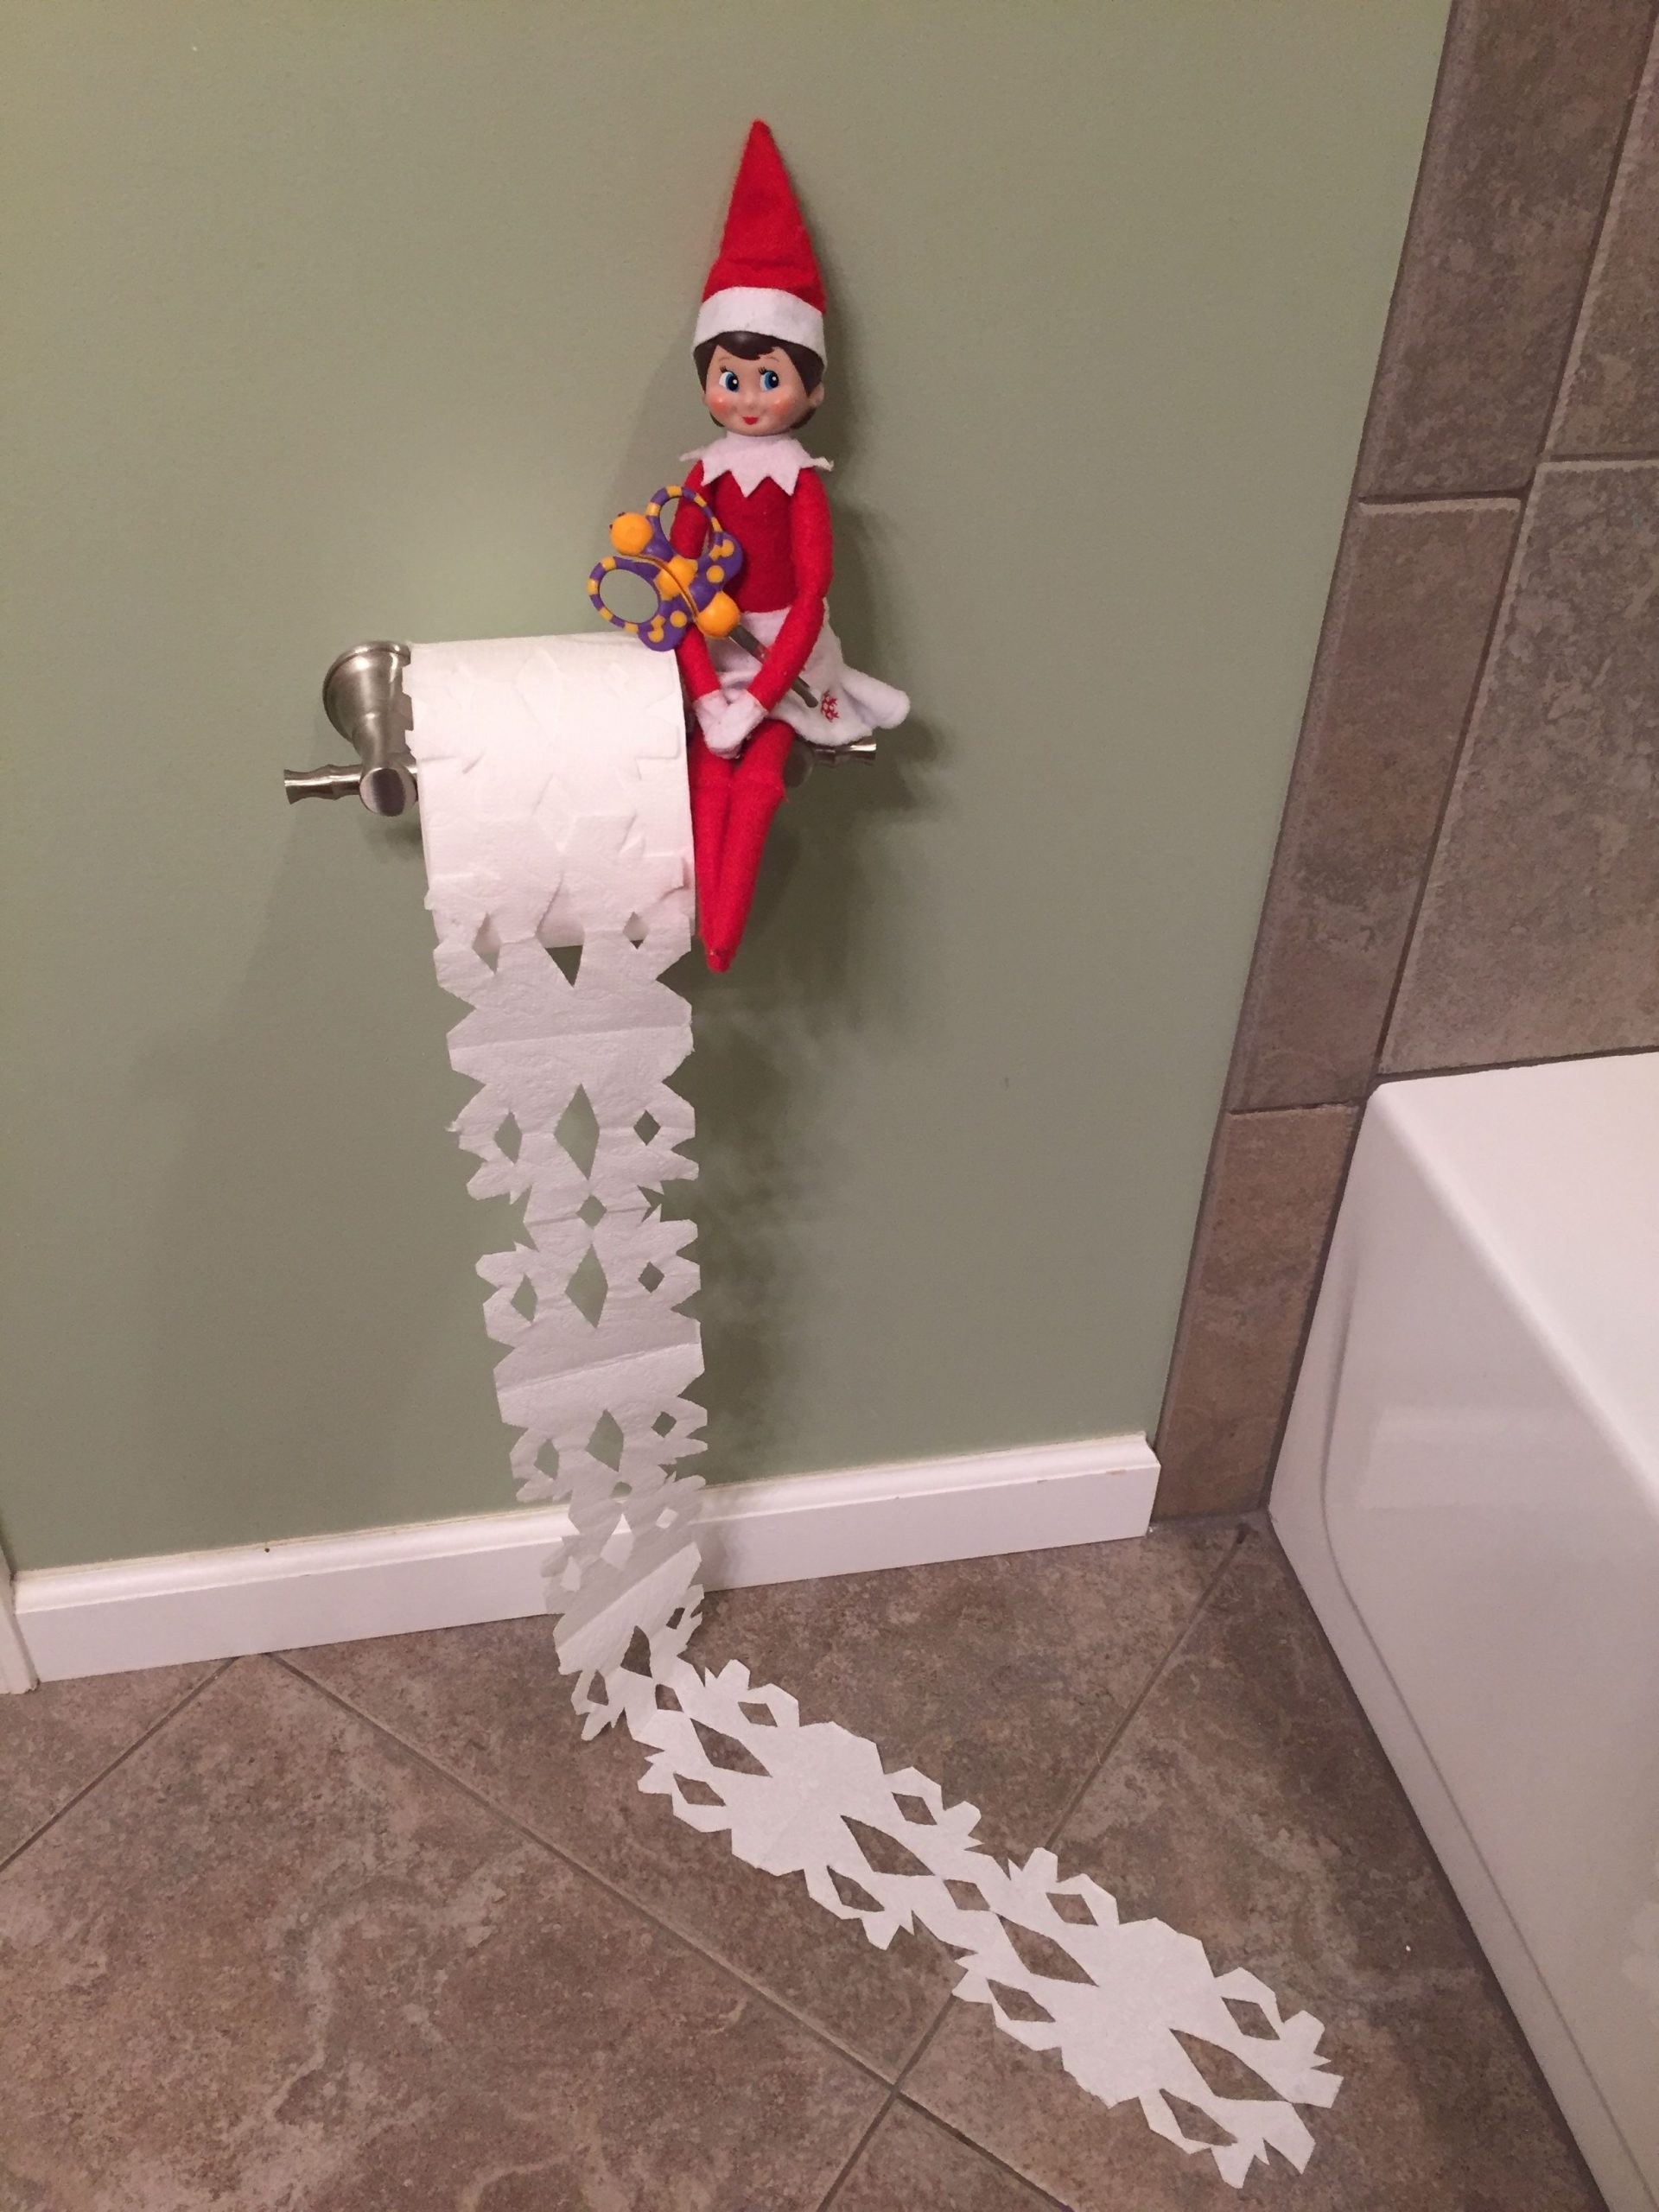 Elf On The Shelf Day 29!! Jingle Bell Made Toilet Paper Elf On The Shelf For Bathroom